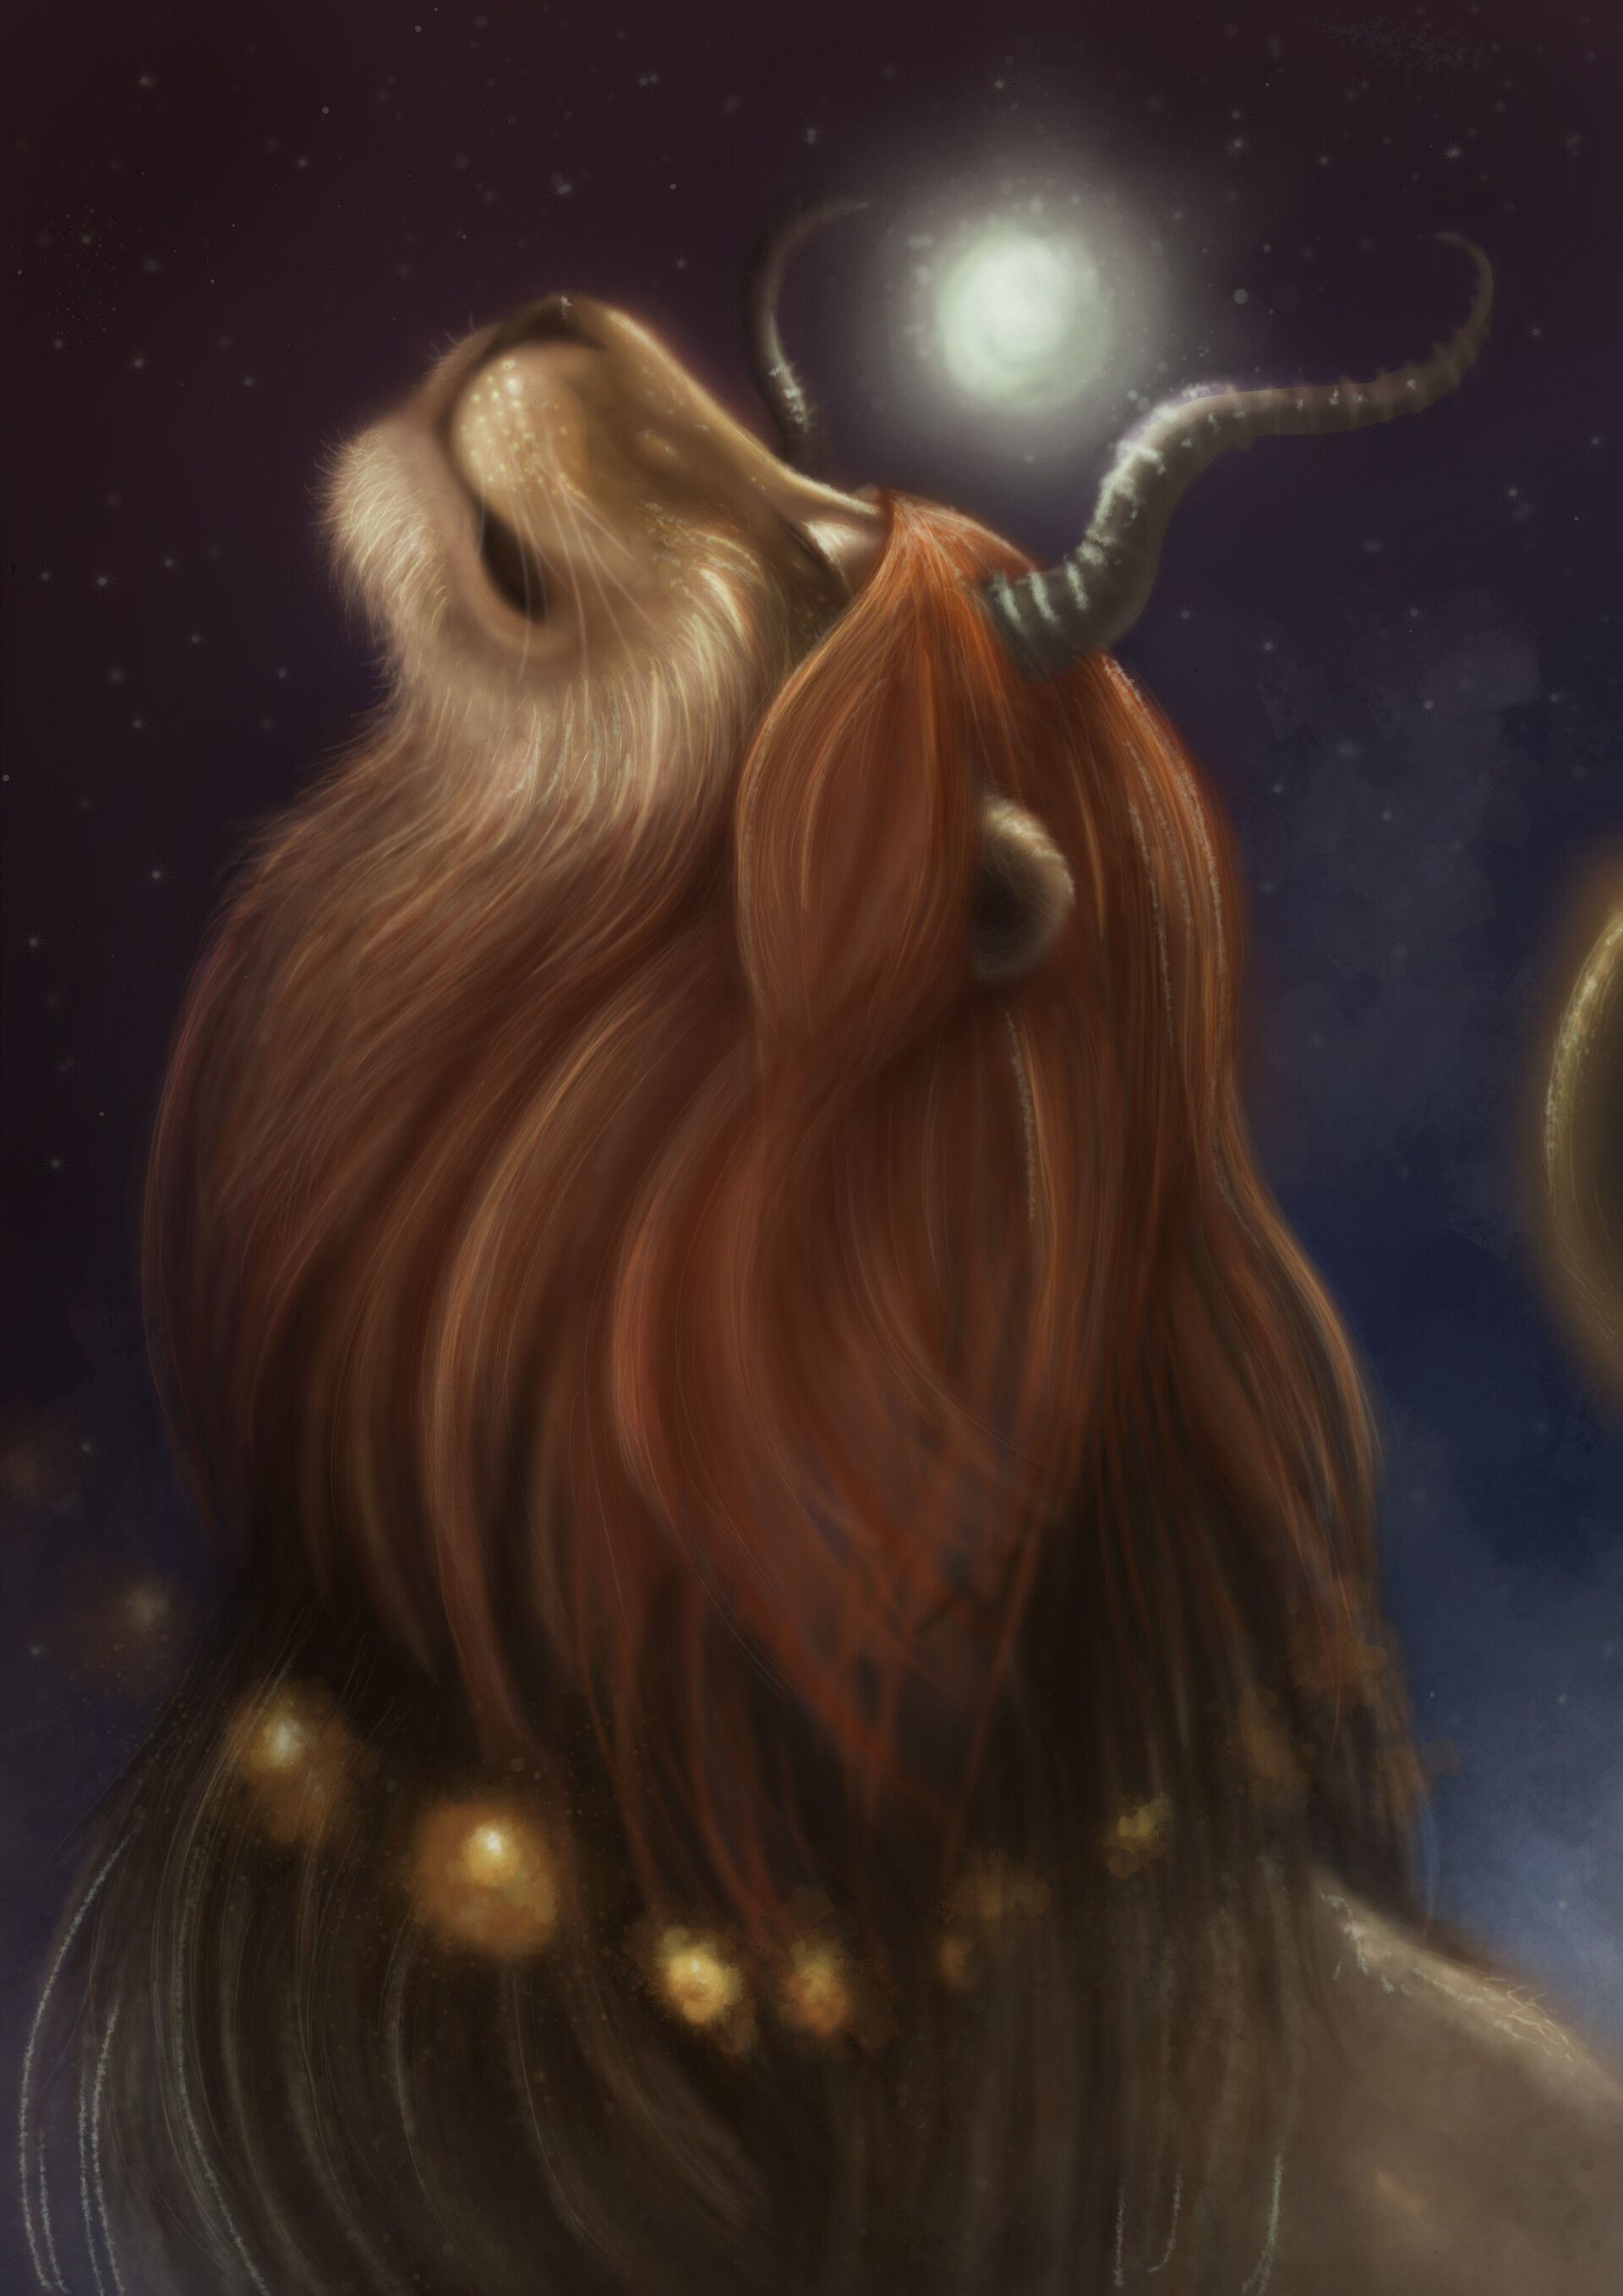 146070 download wallpaper Lion, Mane, Horns, Fantastic, Art screensavers and pictures for free